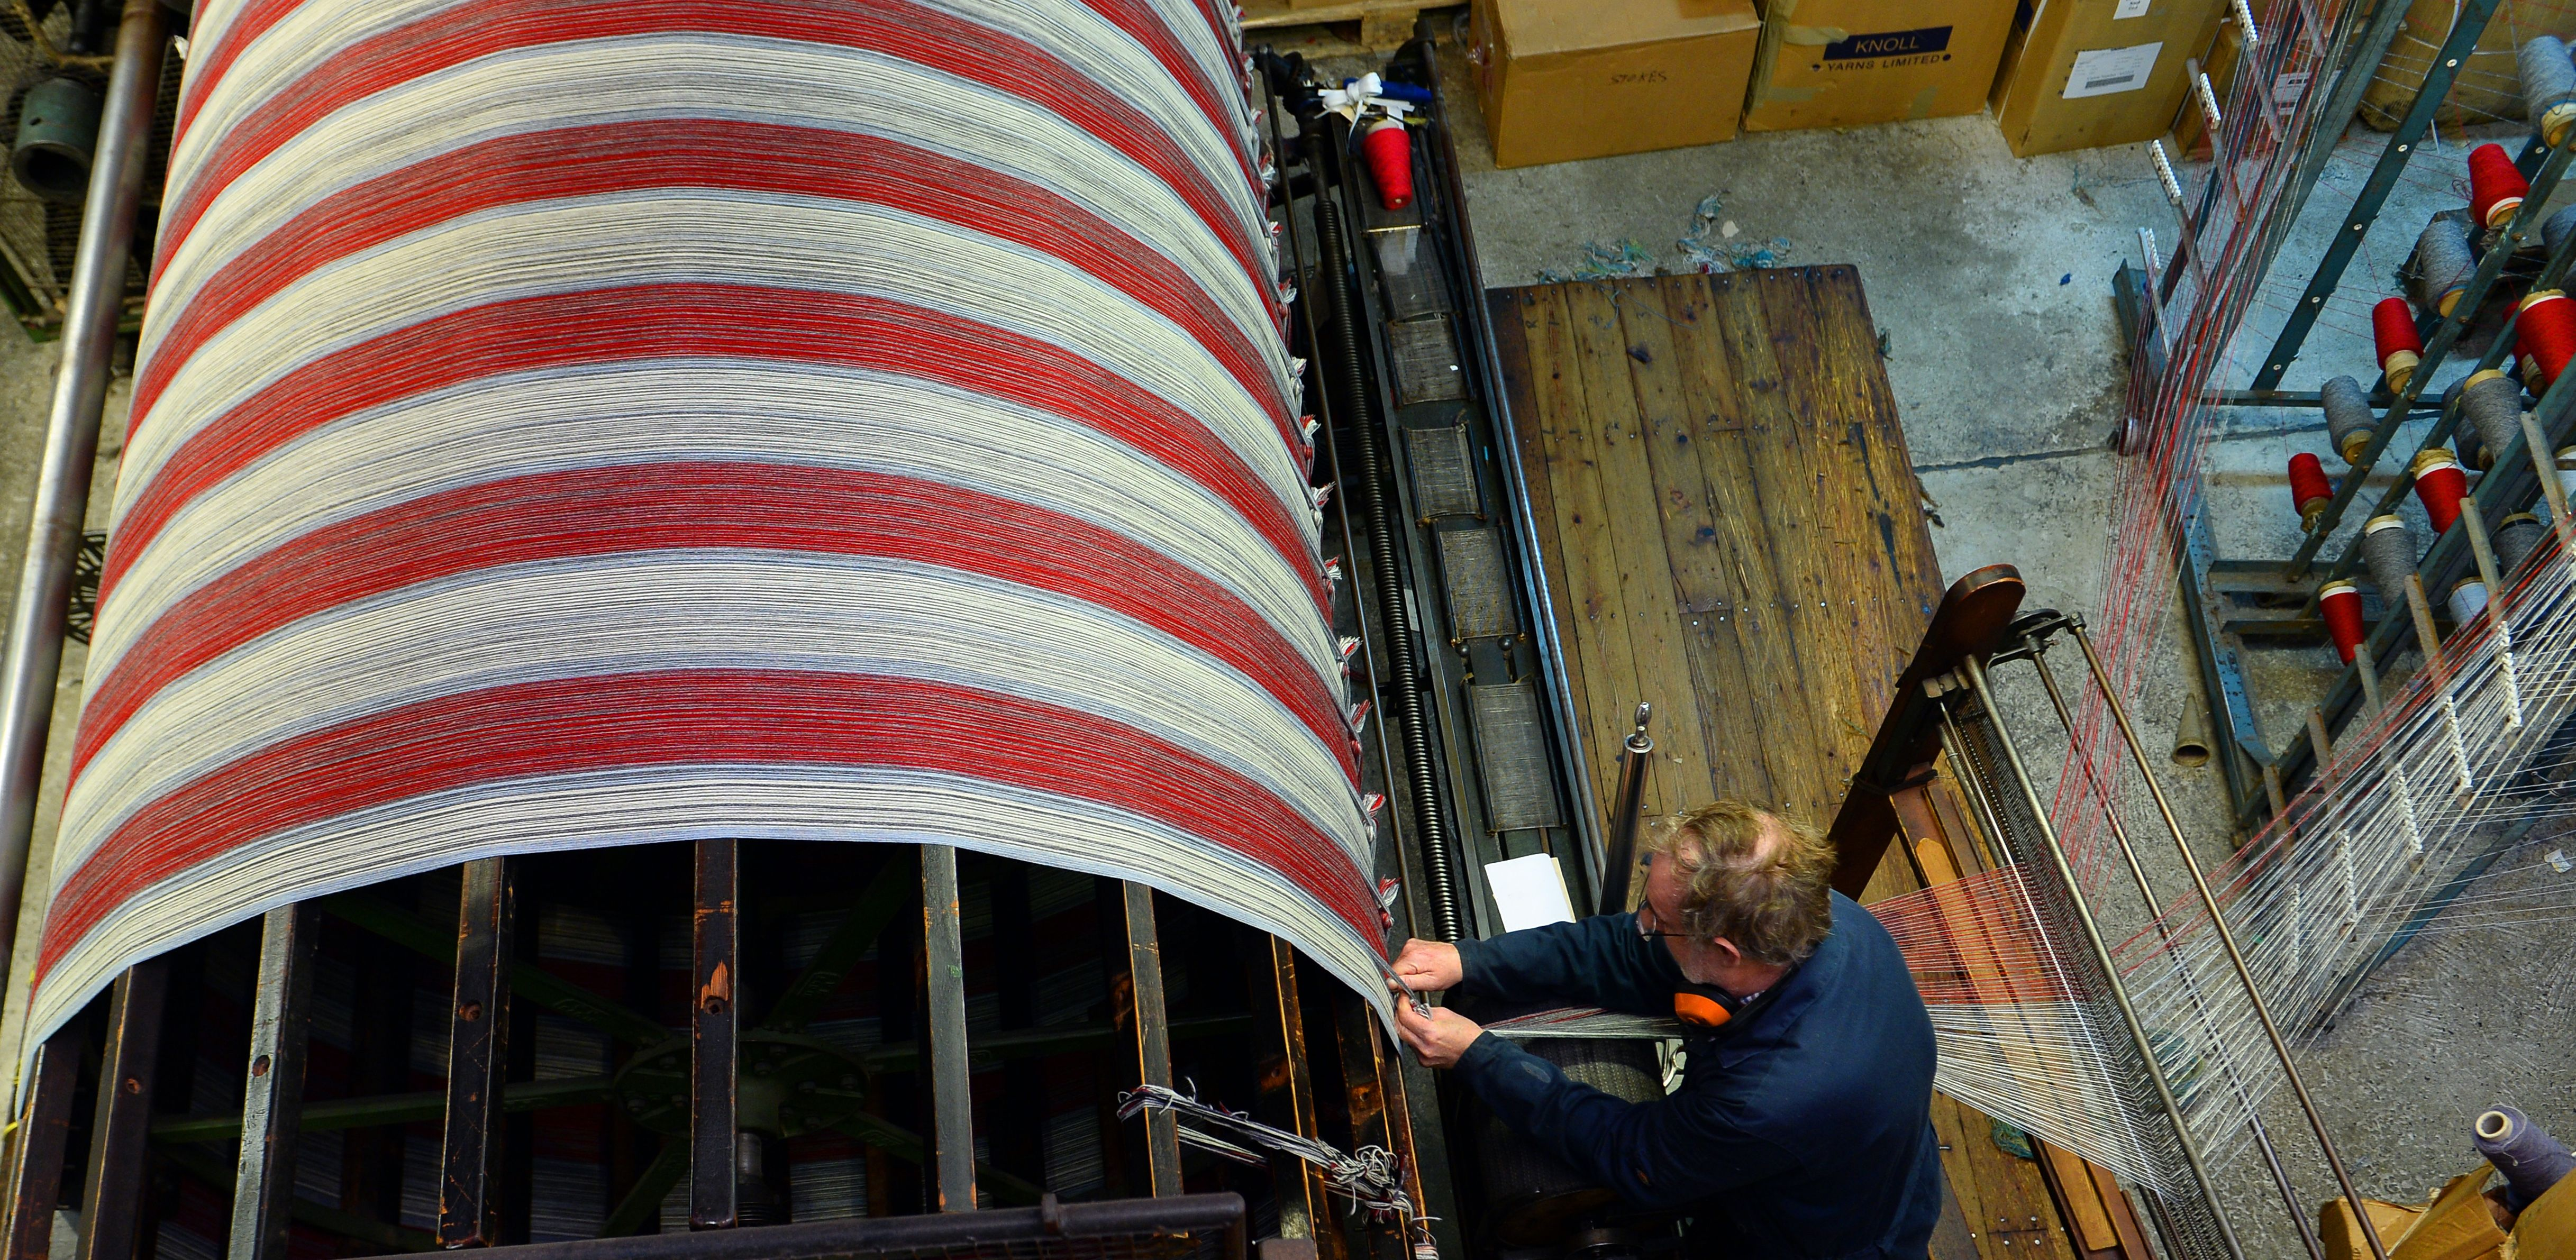 Textiles in production at Melin Teifi, the Museum's woollen mill.